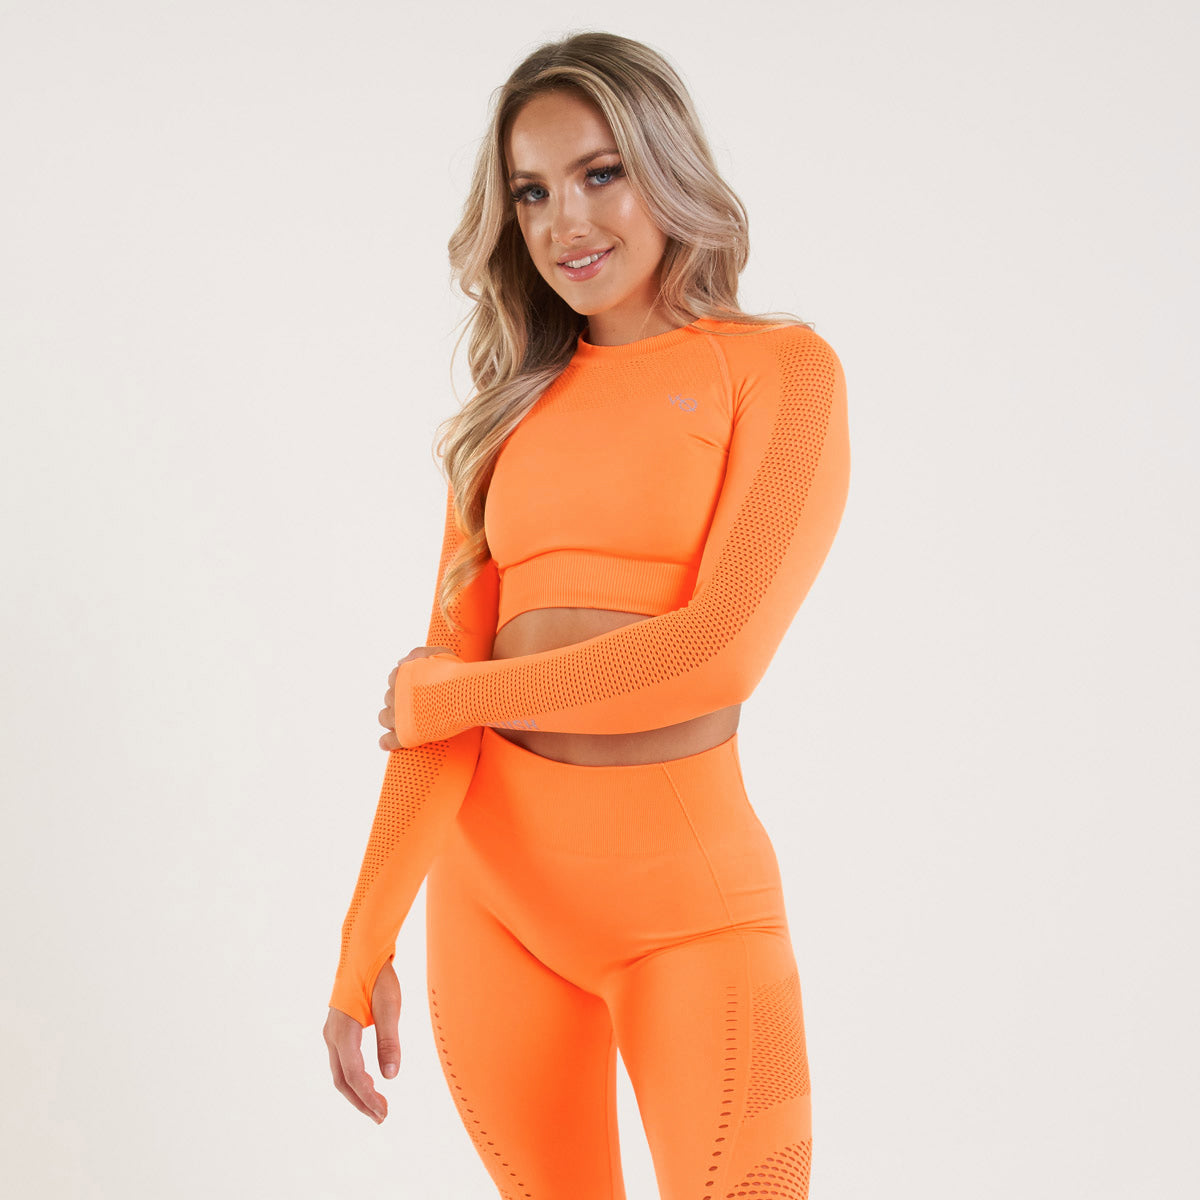 Vanquish Zeal Women's Orange Seamless Long Sleeve Crop Top